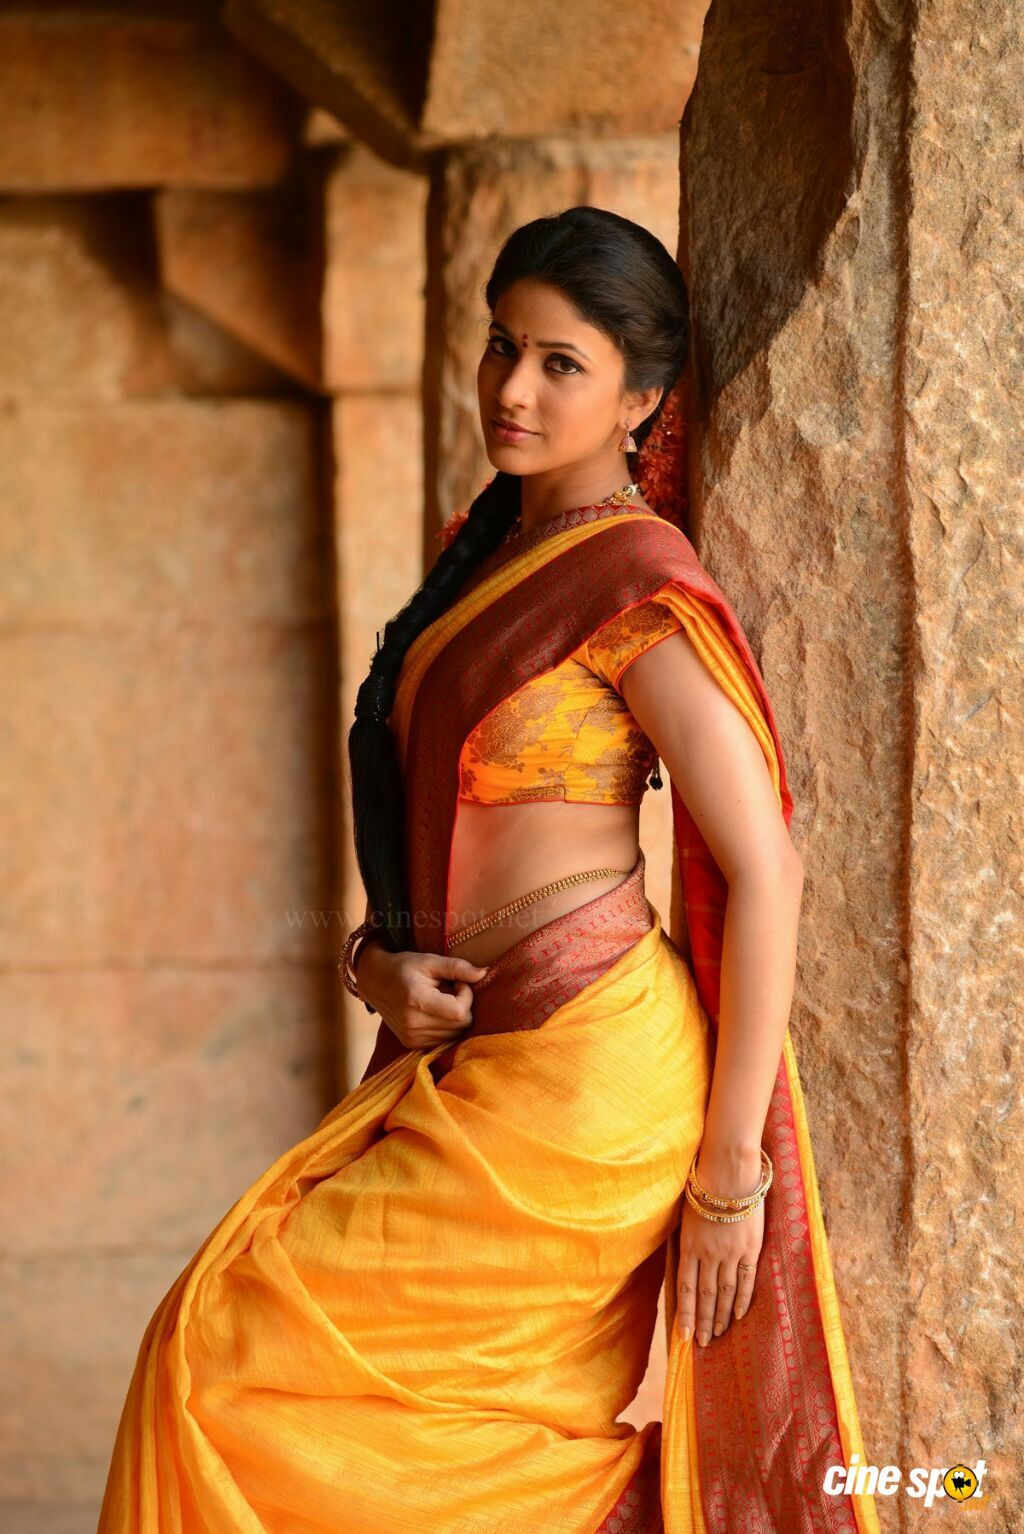 lavanya tripathi in manamlavanya tripathi, lavanya tripathi biography, lavanya tripathi images download, lavanya tripathi images, lavanya tripathi facebook, lavanya tripathi in manam, lavanya tripathi ragalahari, lavanya tripathi profile, lavanya tripathi hot pics, lavanya tripathi navel, lavanya tripathi hot images, lavanya tripathi twitter, lavanya tripathi hot photos, lavanya tripathi height, lavanya tripathi date of birth